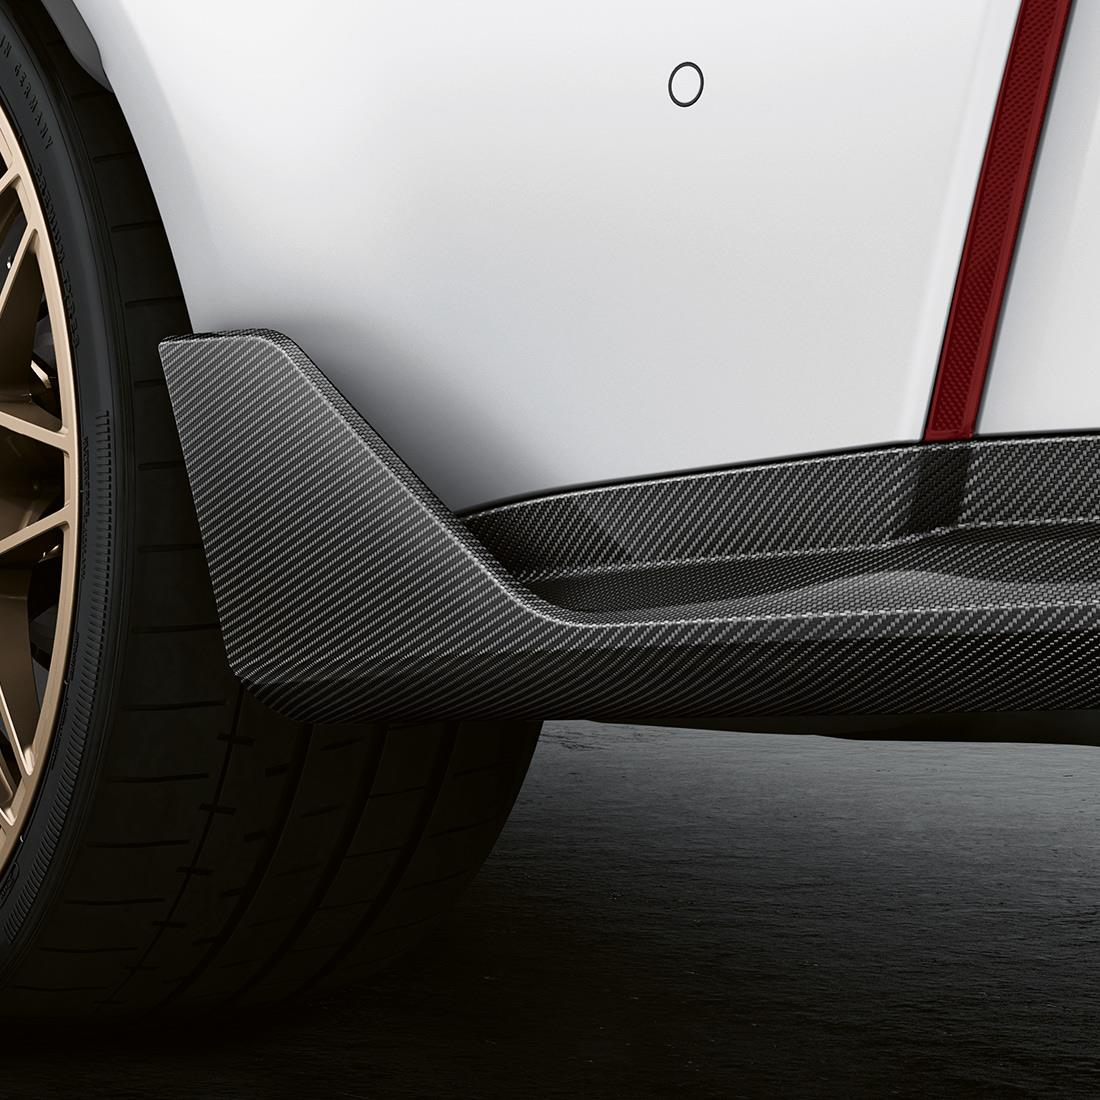 M Performance Rear winglet in carbon fiber